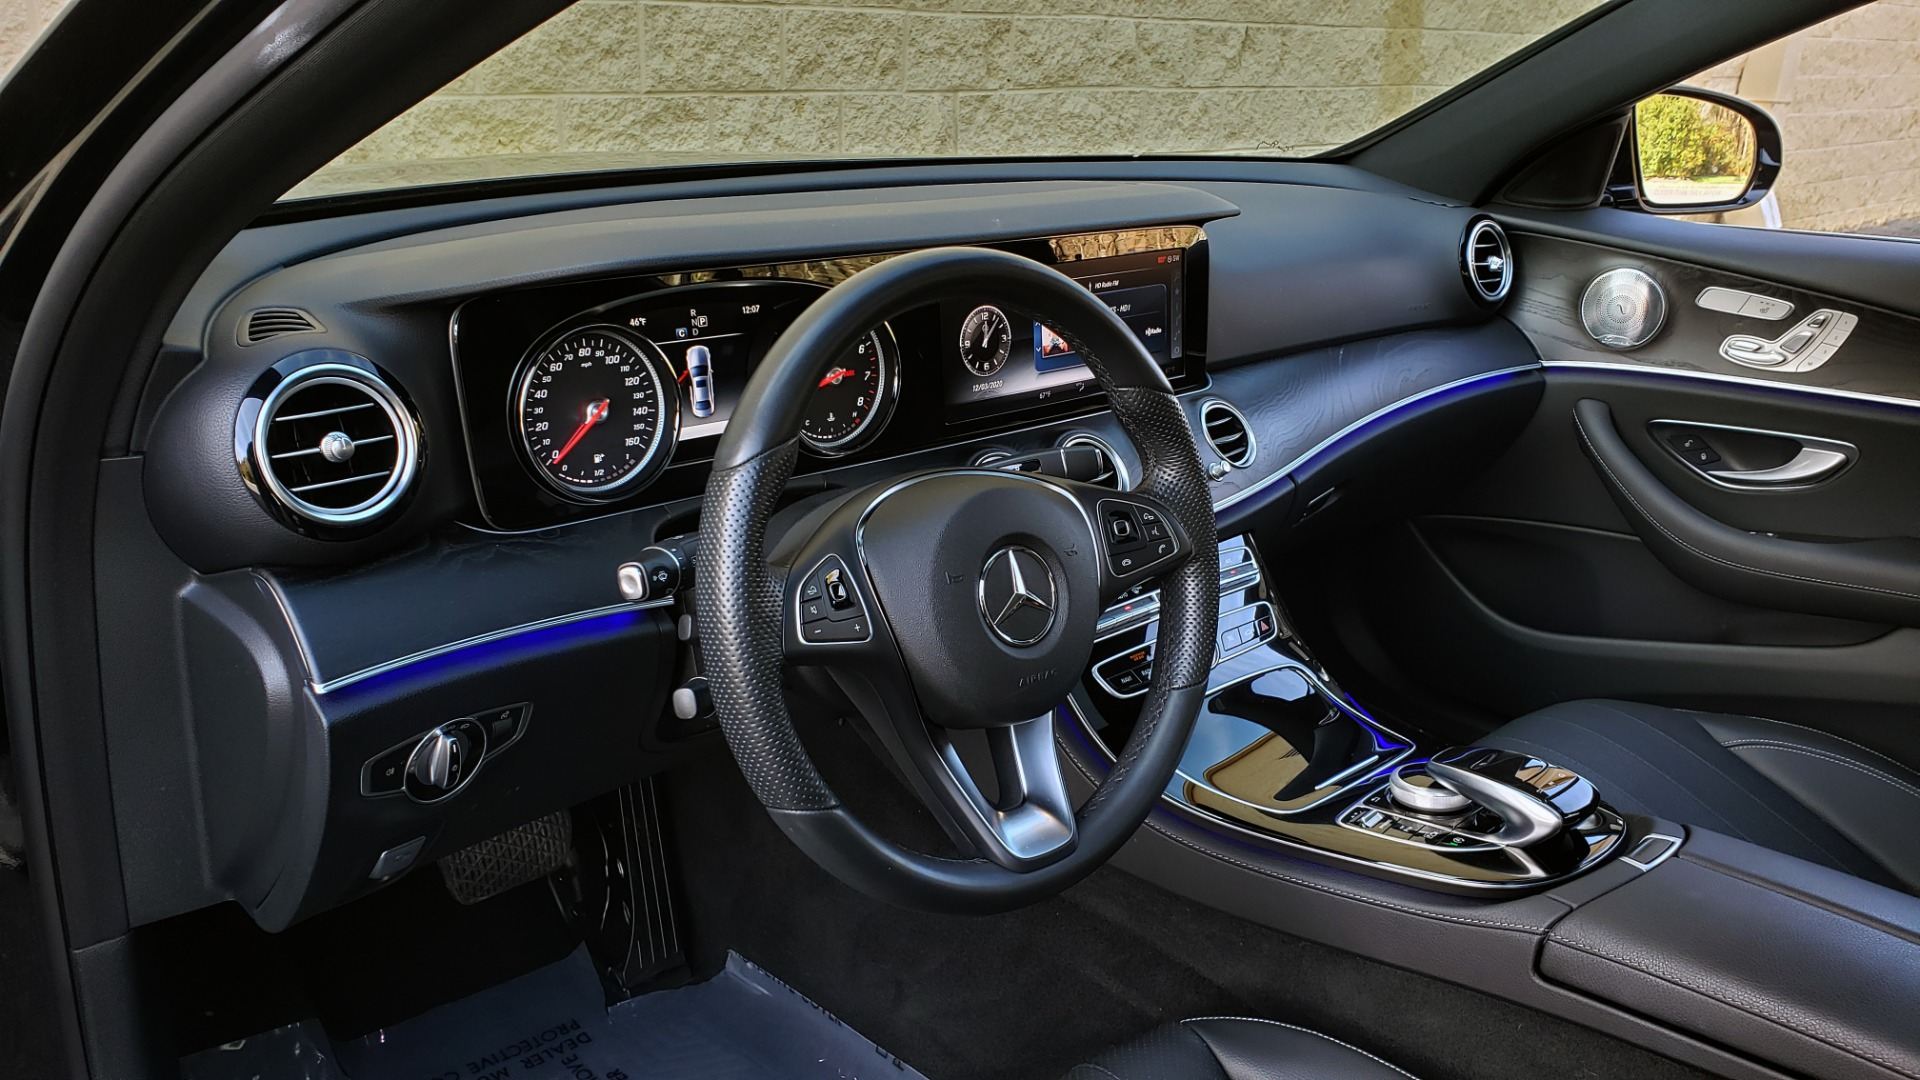 Used 2017 Mercedes-Benz E-CLASS E 300 PREMIUM / NAV / SUNROOF / BURMESTER / HTD STS / REARVIEW for sale $29,995 at Formula Imports in Charlotte NC 28227 39